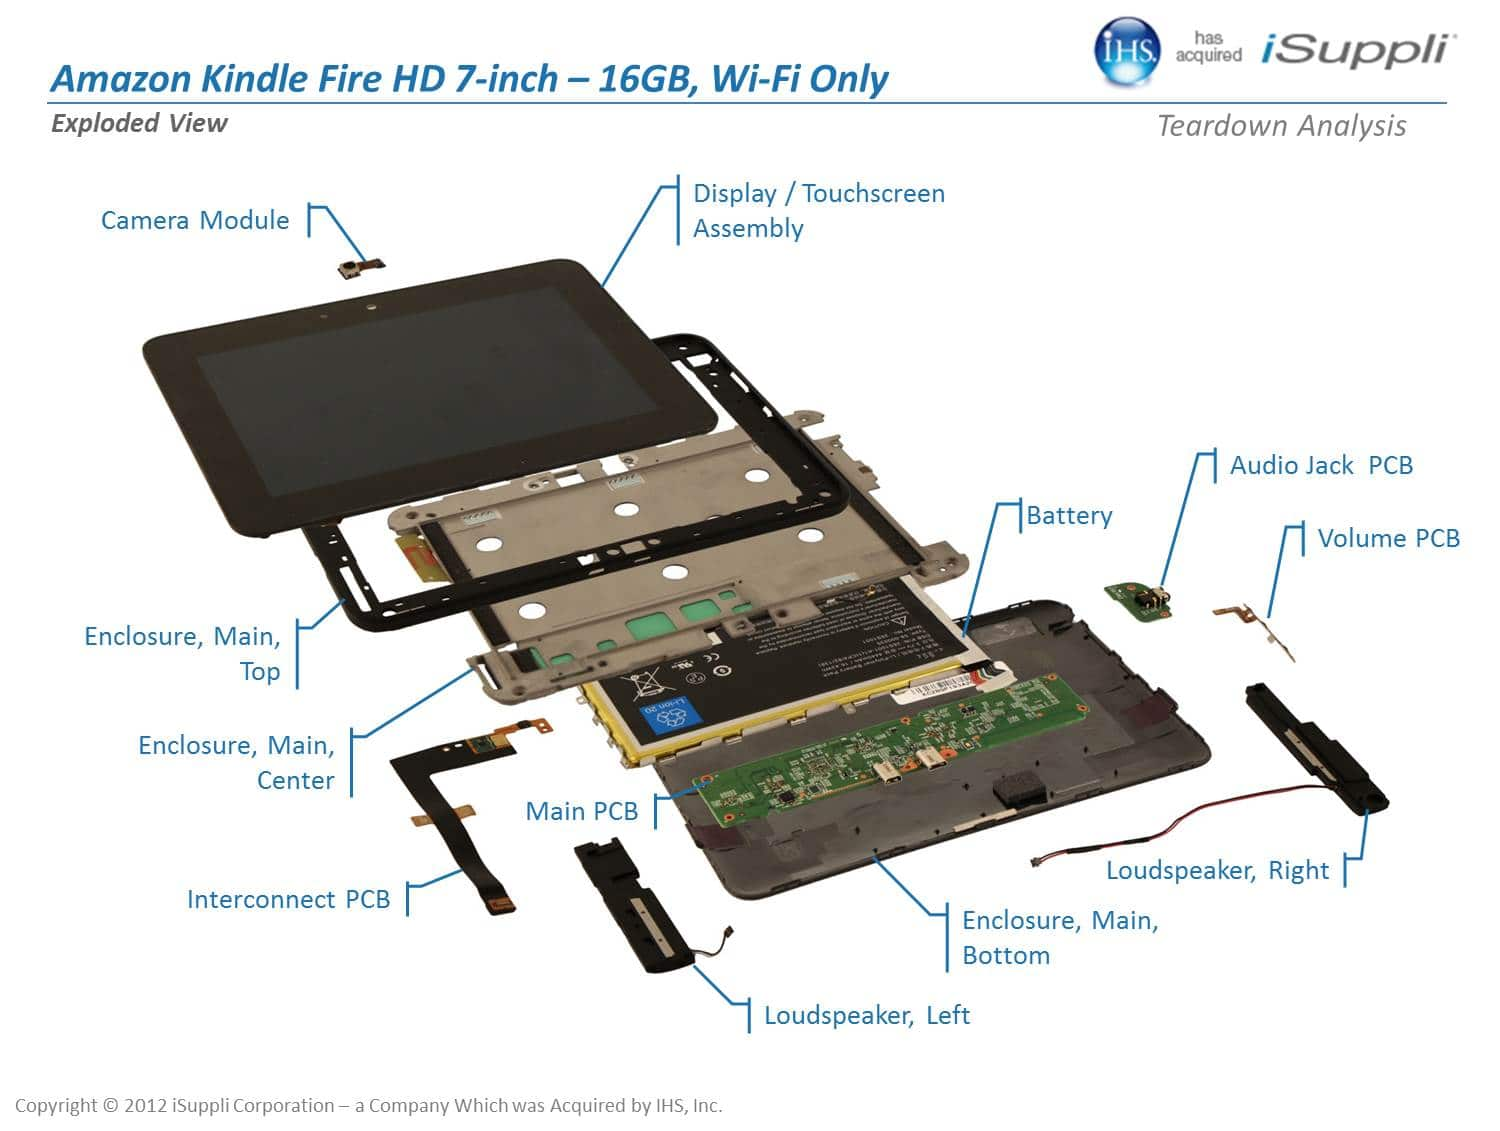 wiring diagram for a kindle wiring diagram u2022 rh zerobin co Channel 6 D S Ph11 RR Amp Wiring Diagram for A Car Wiring Diagrams